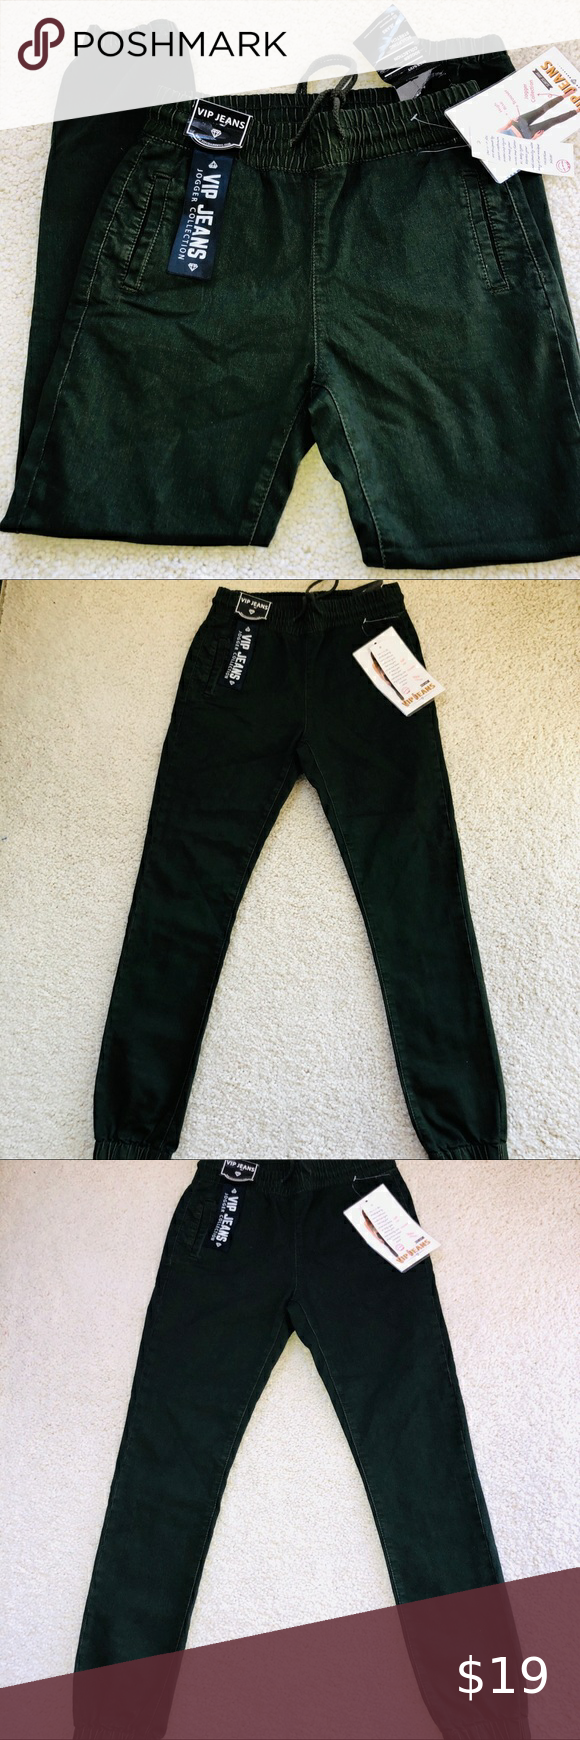 Vip Jeans Joggers Women S Green Size M Vip Jeans Joggers Women S Green Size M Trouser High Rise Pretty Color Dark G In 2020 Jogger Jeans Pants For Women Joggers Womens